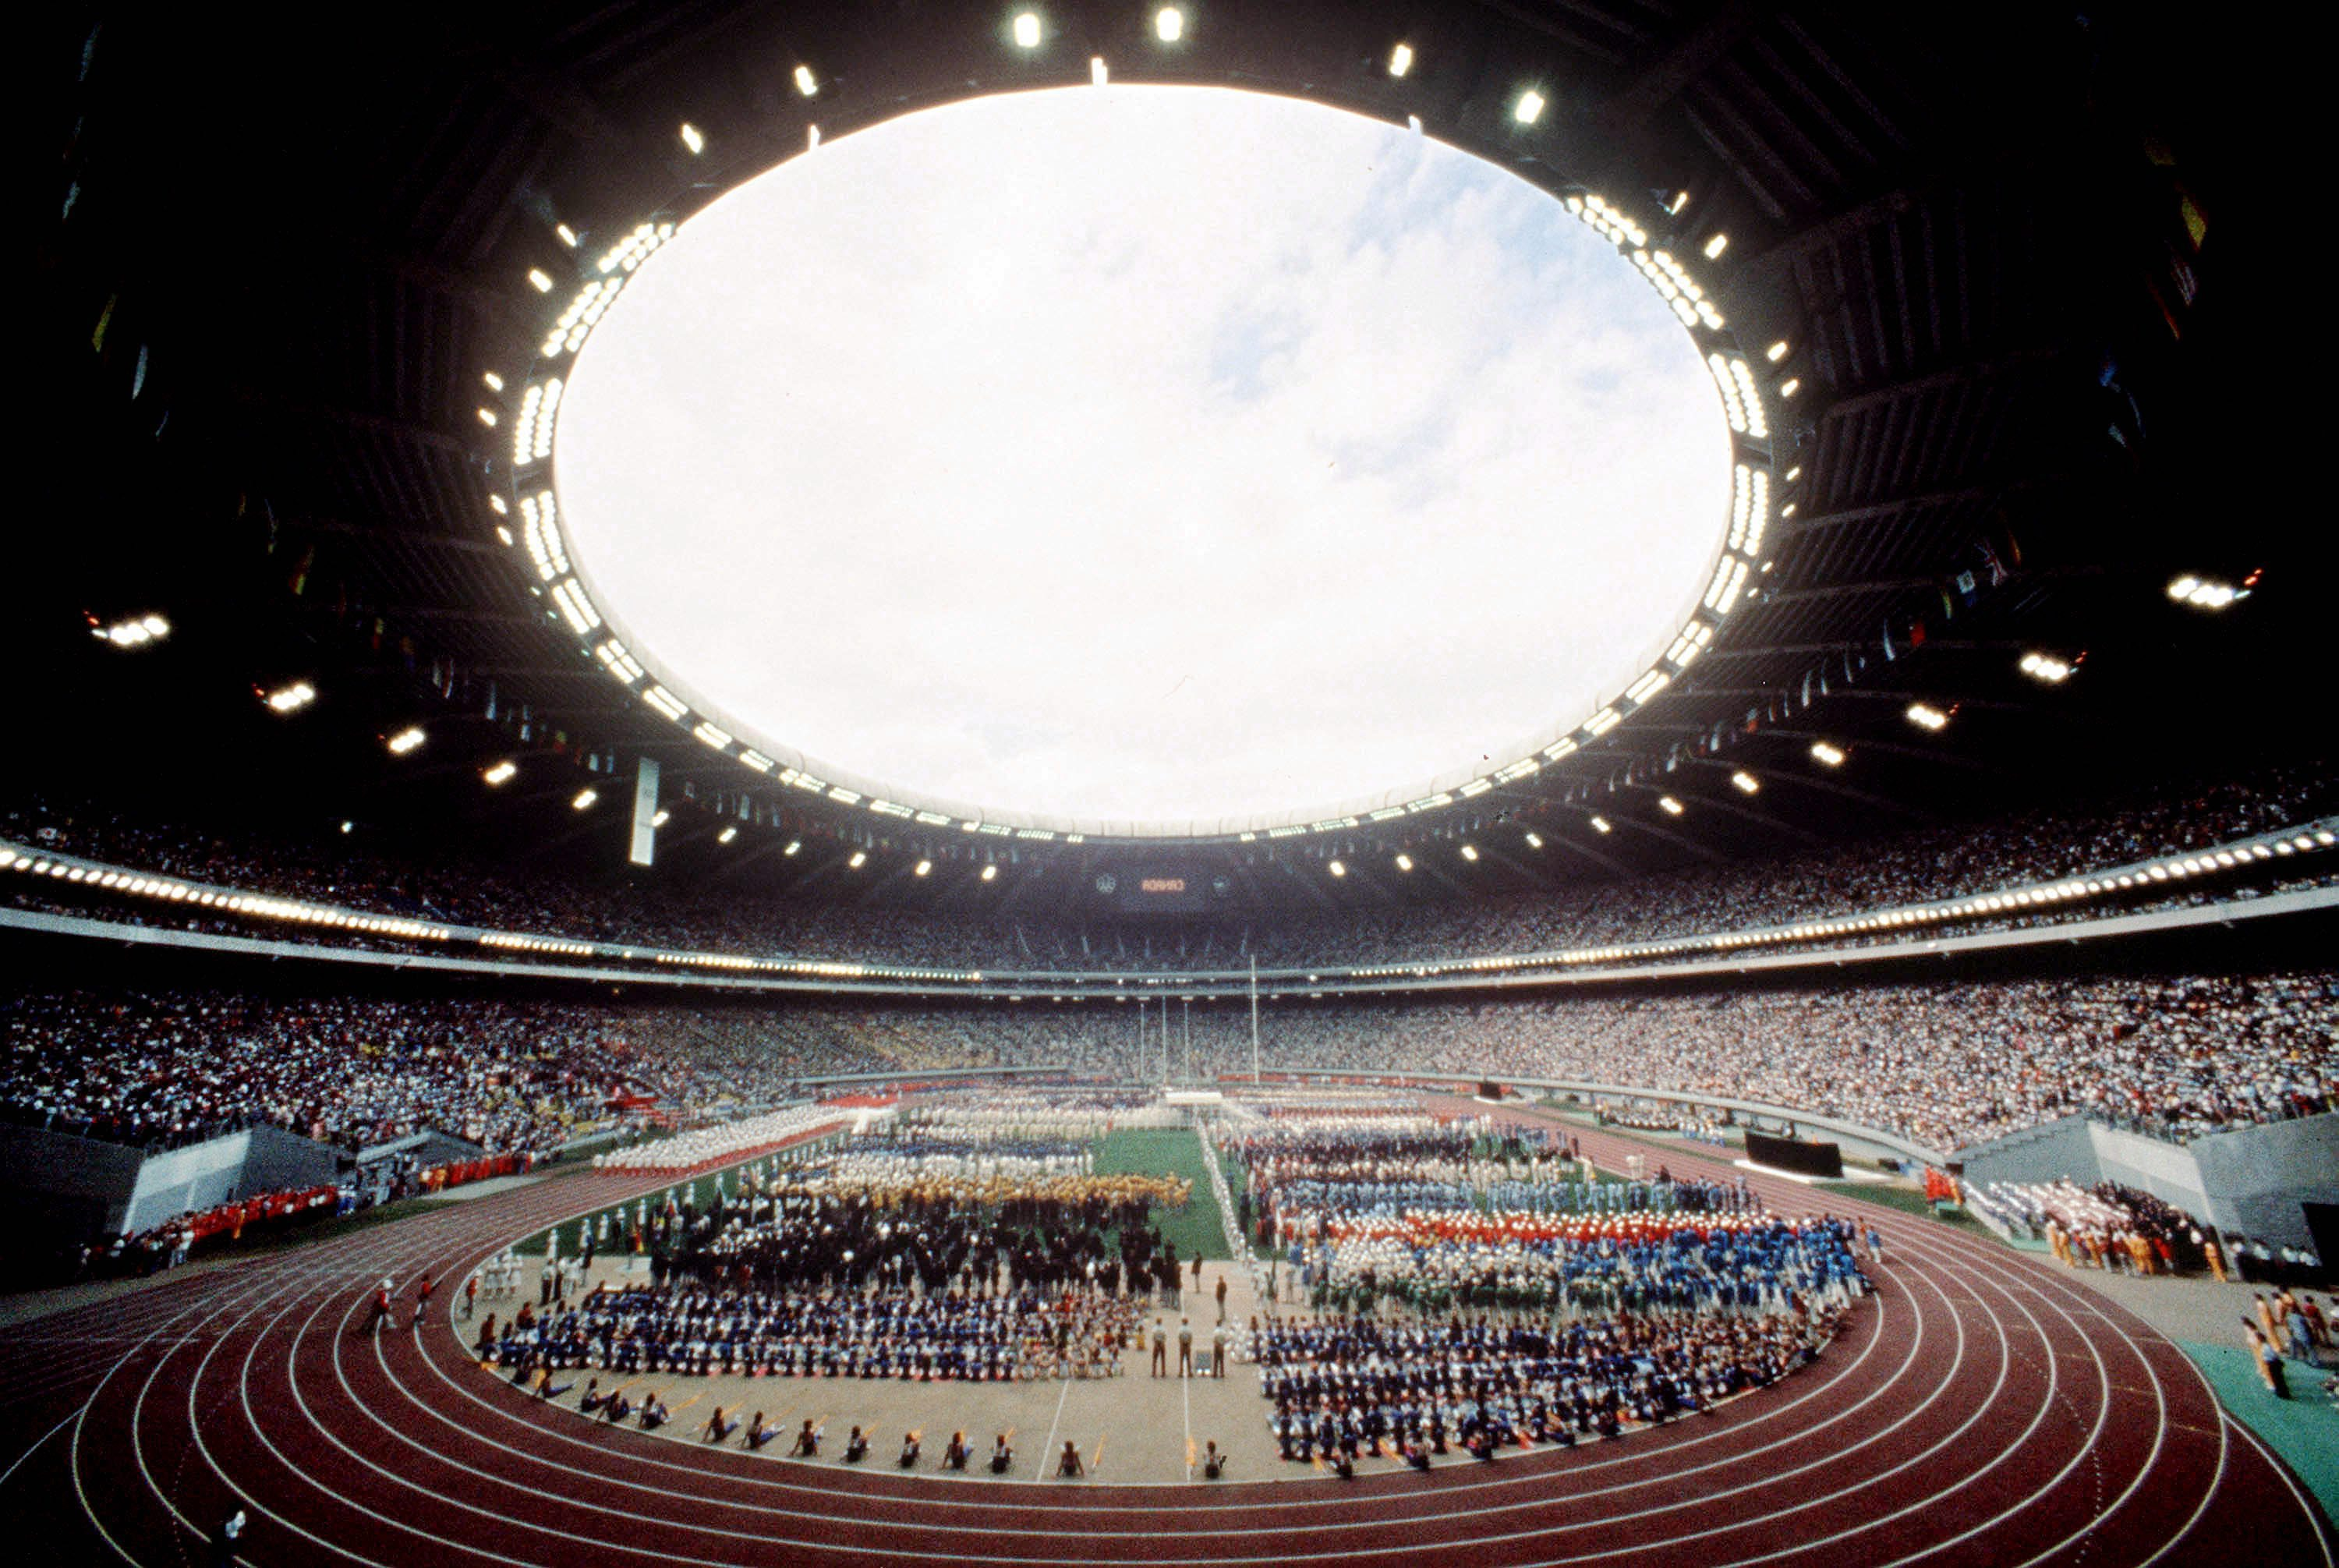 Inside the Olympic Stadium in Montreal during the 1976 Olympic Games. (CP Photo/ COC/ RW) Cette photo montre une vue de l'intérieur du Stade olympique lors des Jeux olympiques de Montréal de 1976. (Photo PC/AOC)